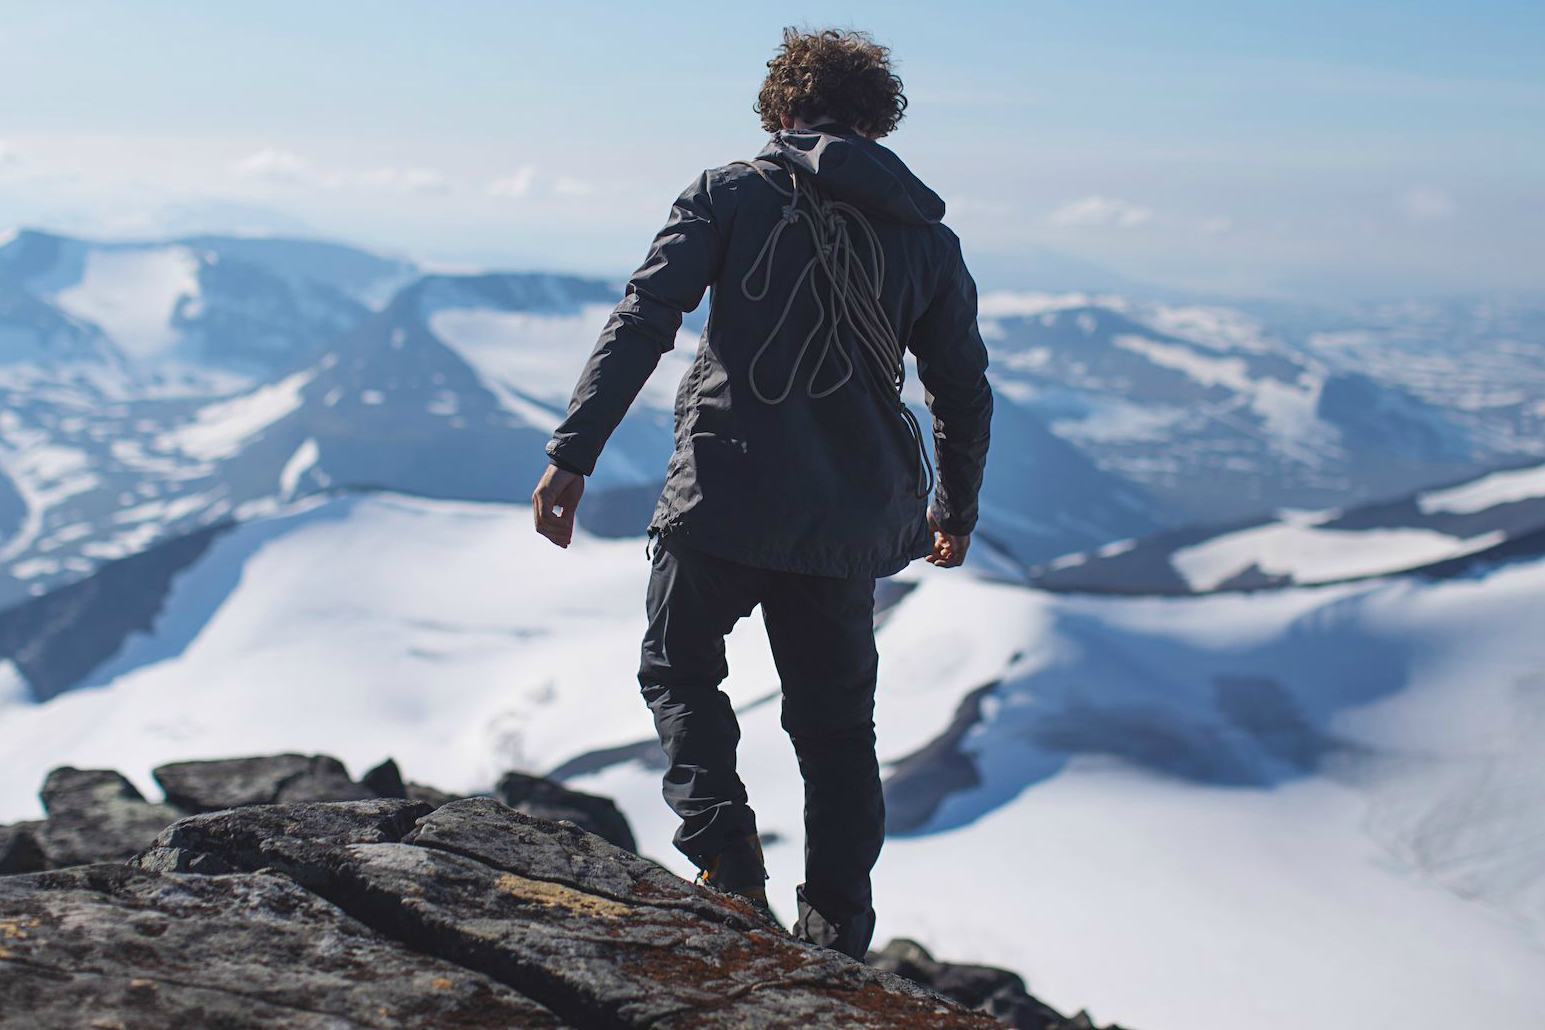 """Fabian and I hiked up the Mihkájiegna glacier and climbed the Sarektjåhkkå, one of the highest mountains in Sweden. This photo is from our way down on the summit ridge."""